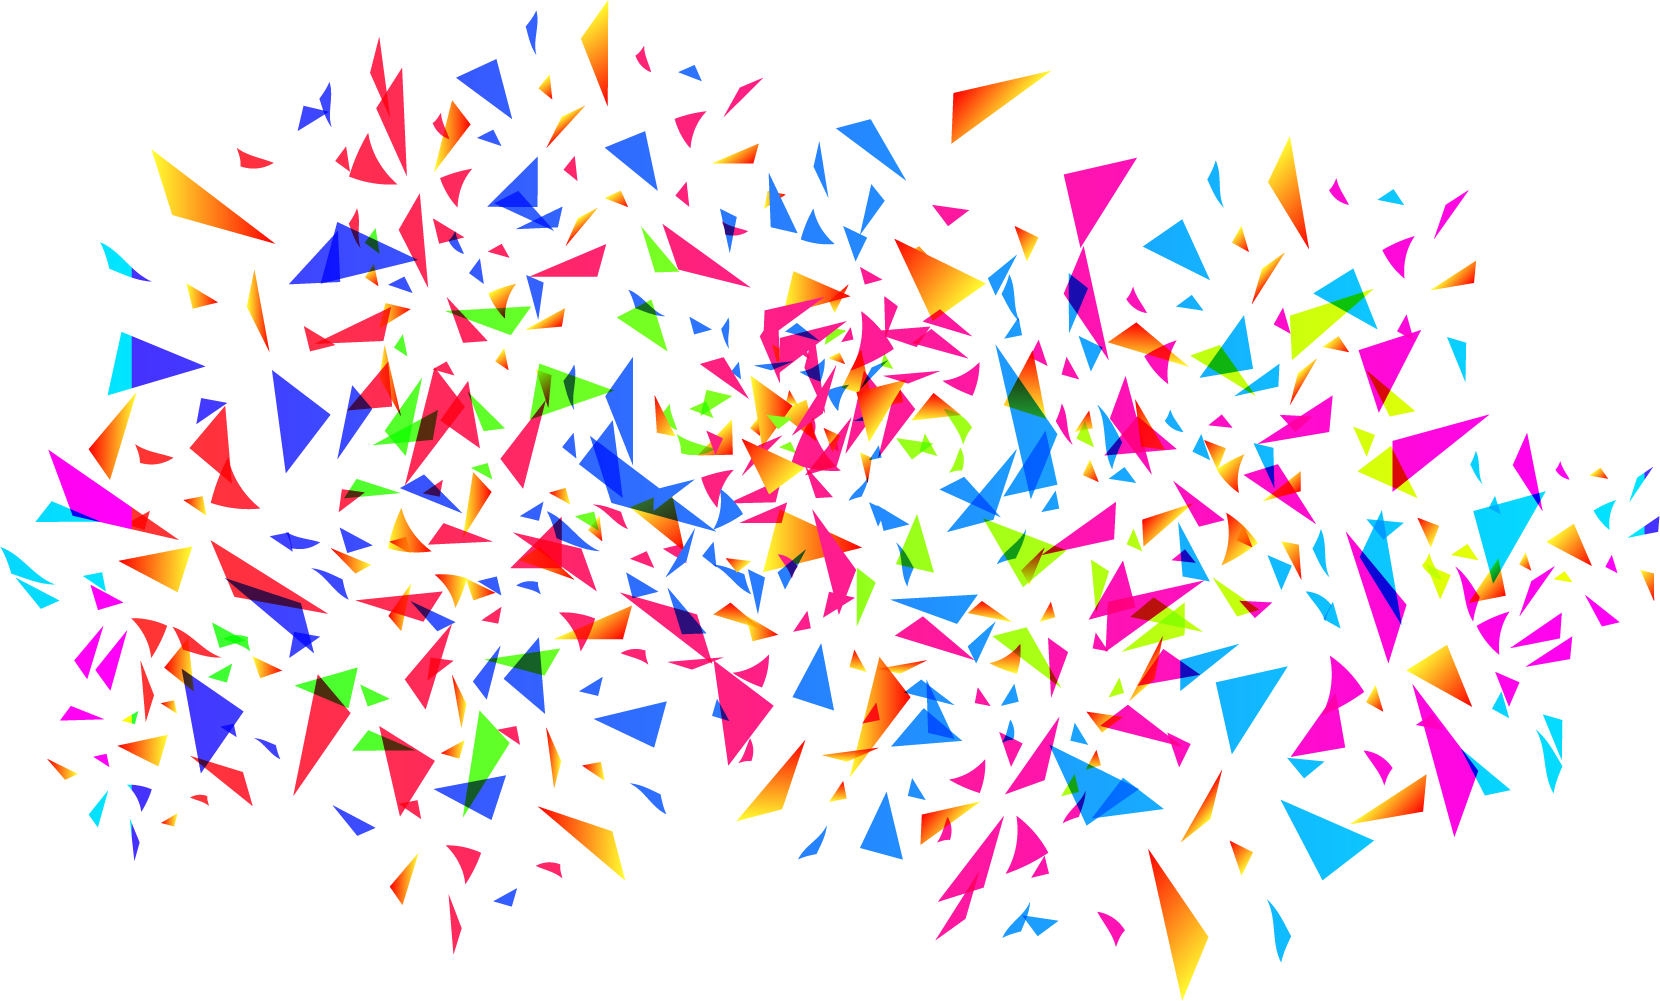 Abstract-Colorful-Confetti-On-Transparent-Background 1.png